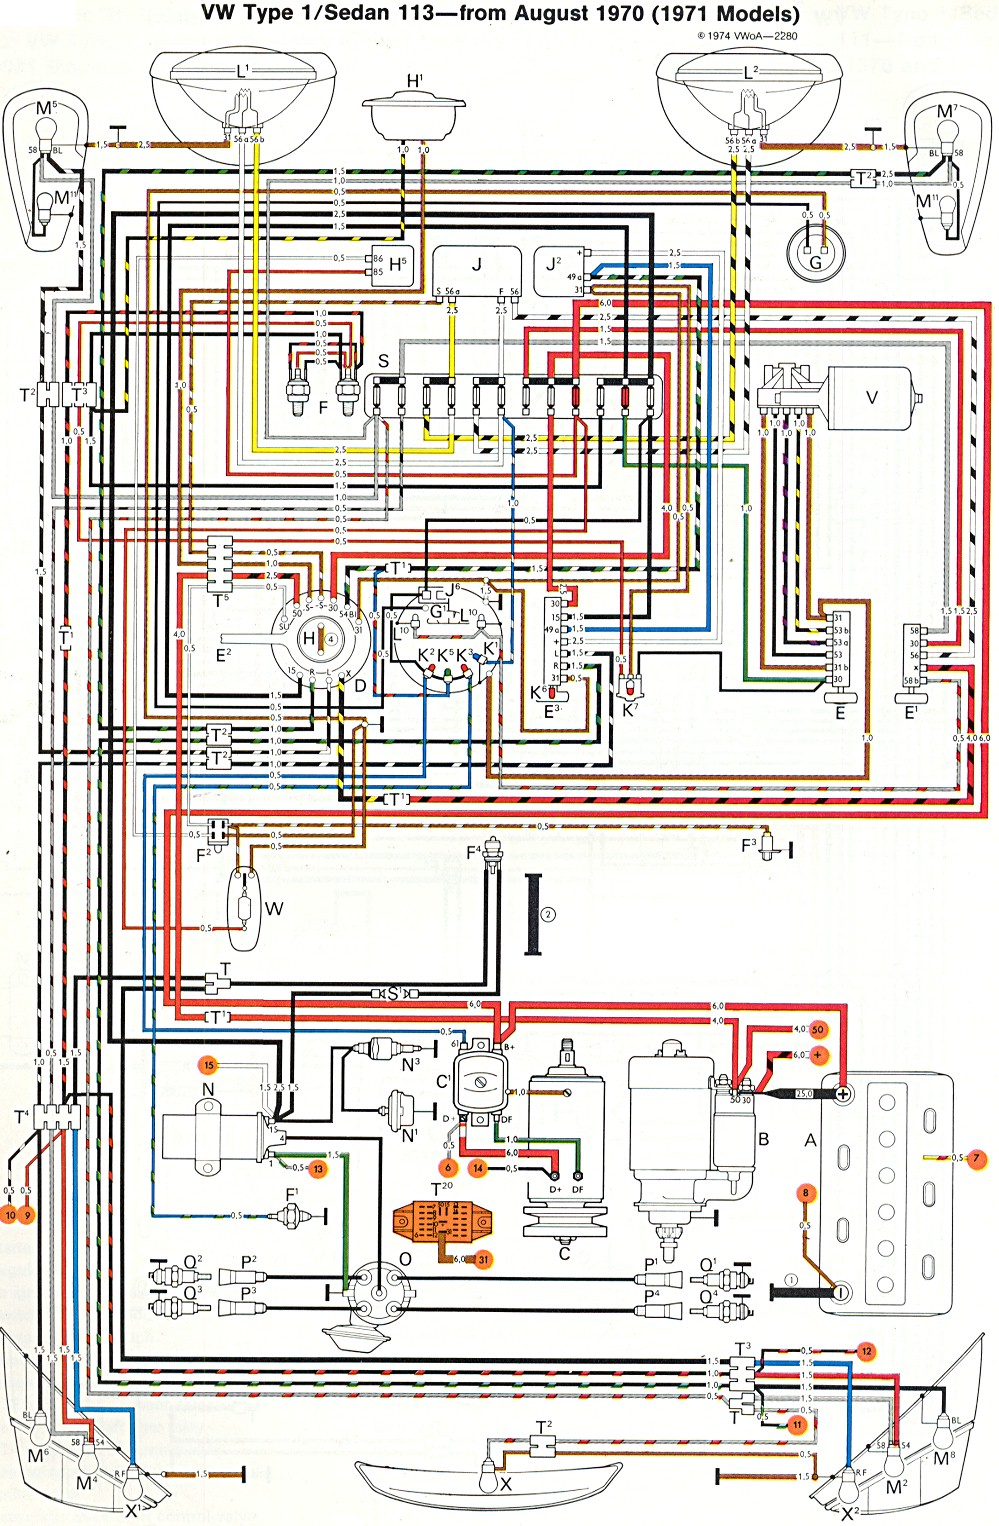 bug_super_71 1971 super beetle wiring diagram thegoldenbug com vw beetle wiring diagram at cita.asia